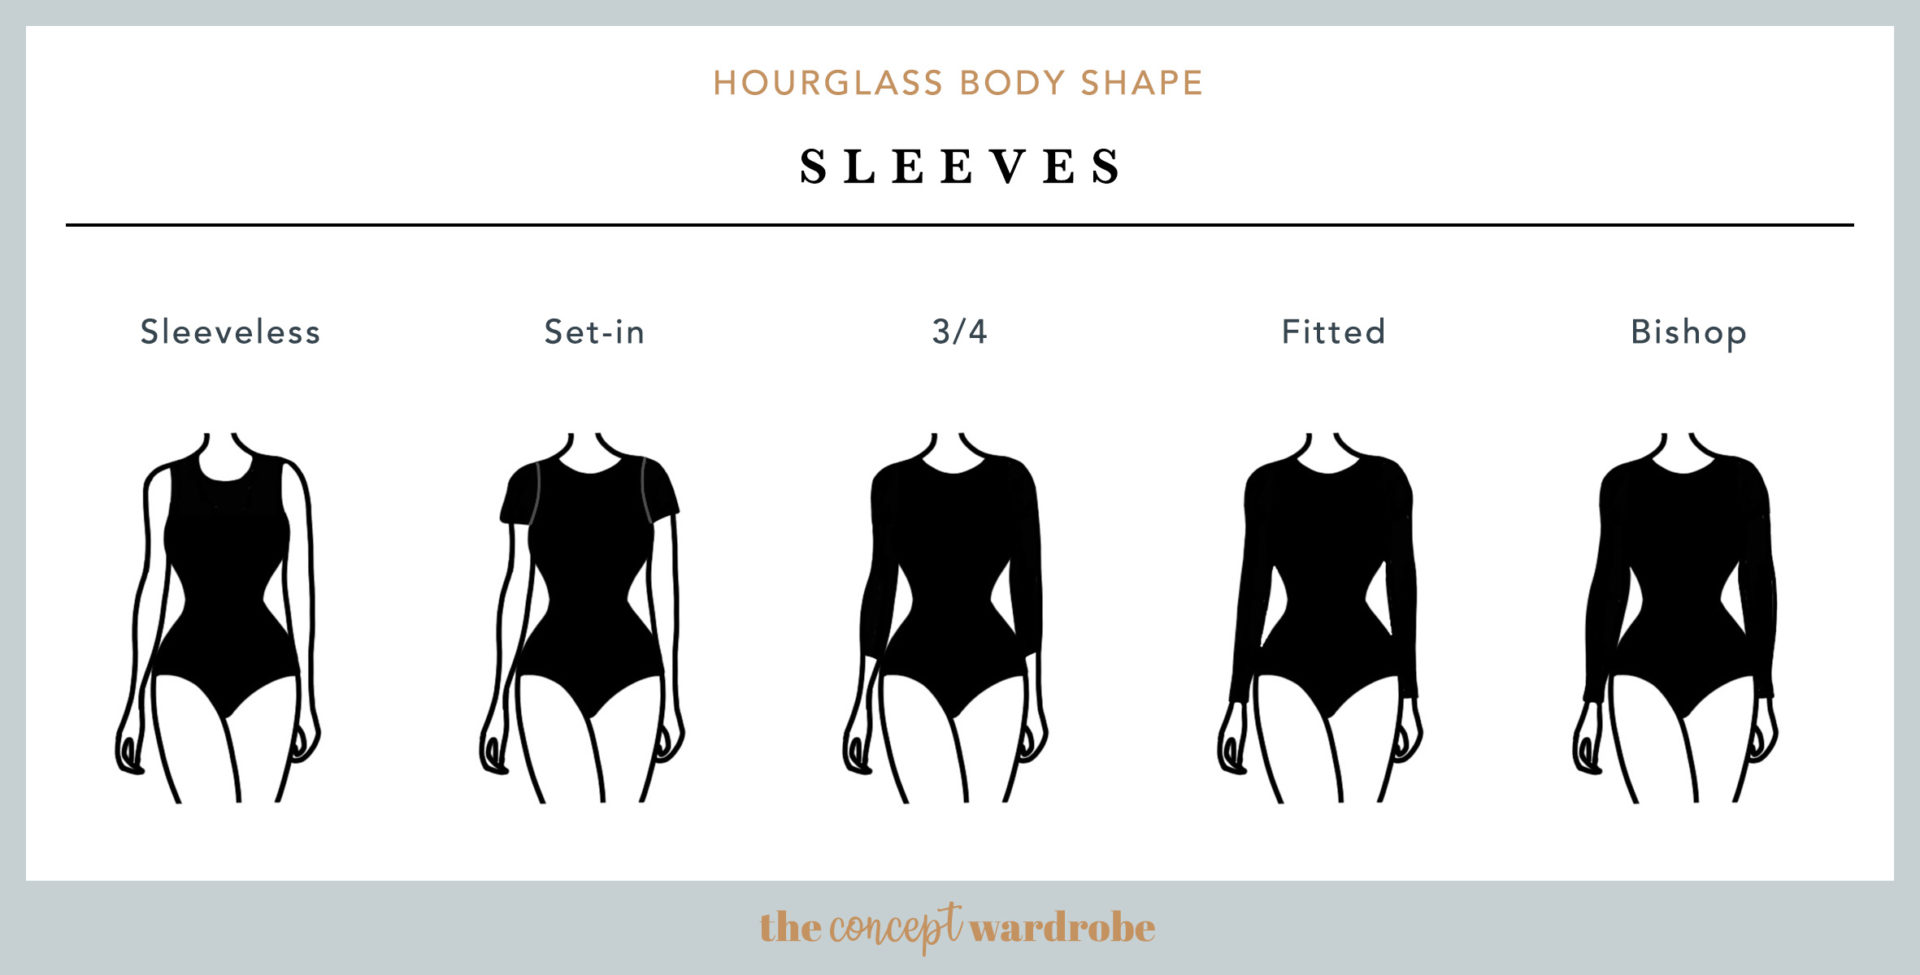 Hourglass Body Shape Sleeves - the concept wardrobe